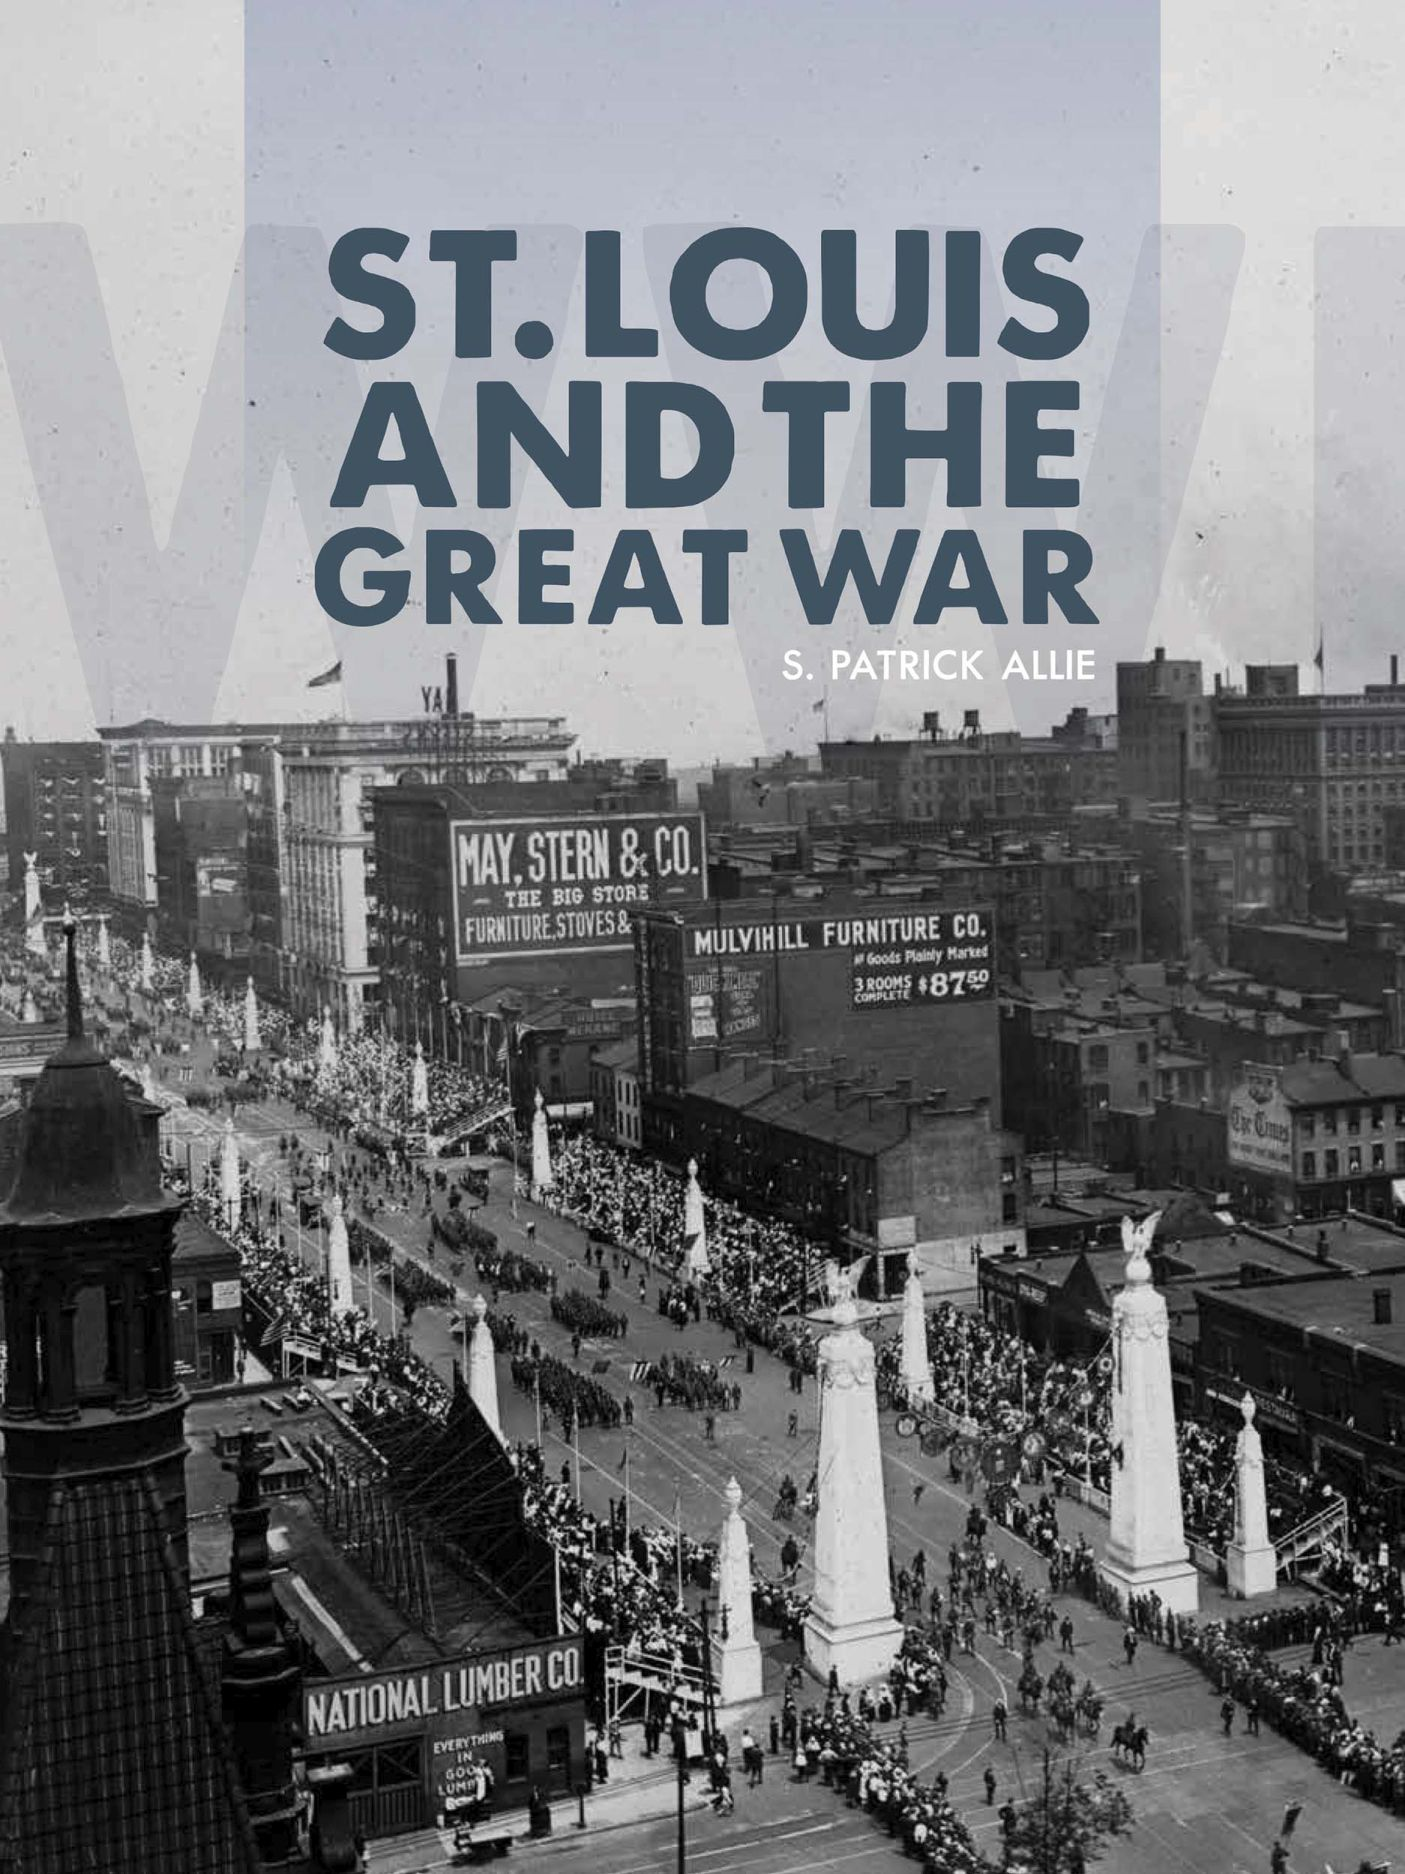 St. Louis and the Great War